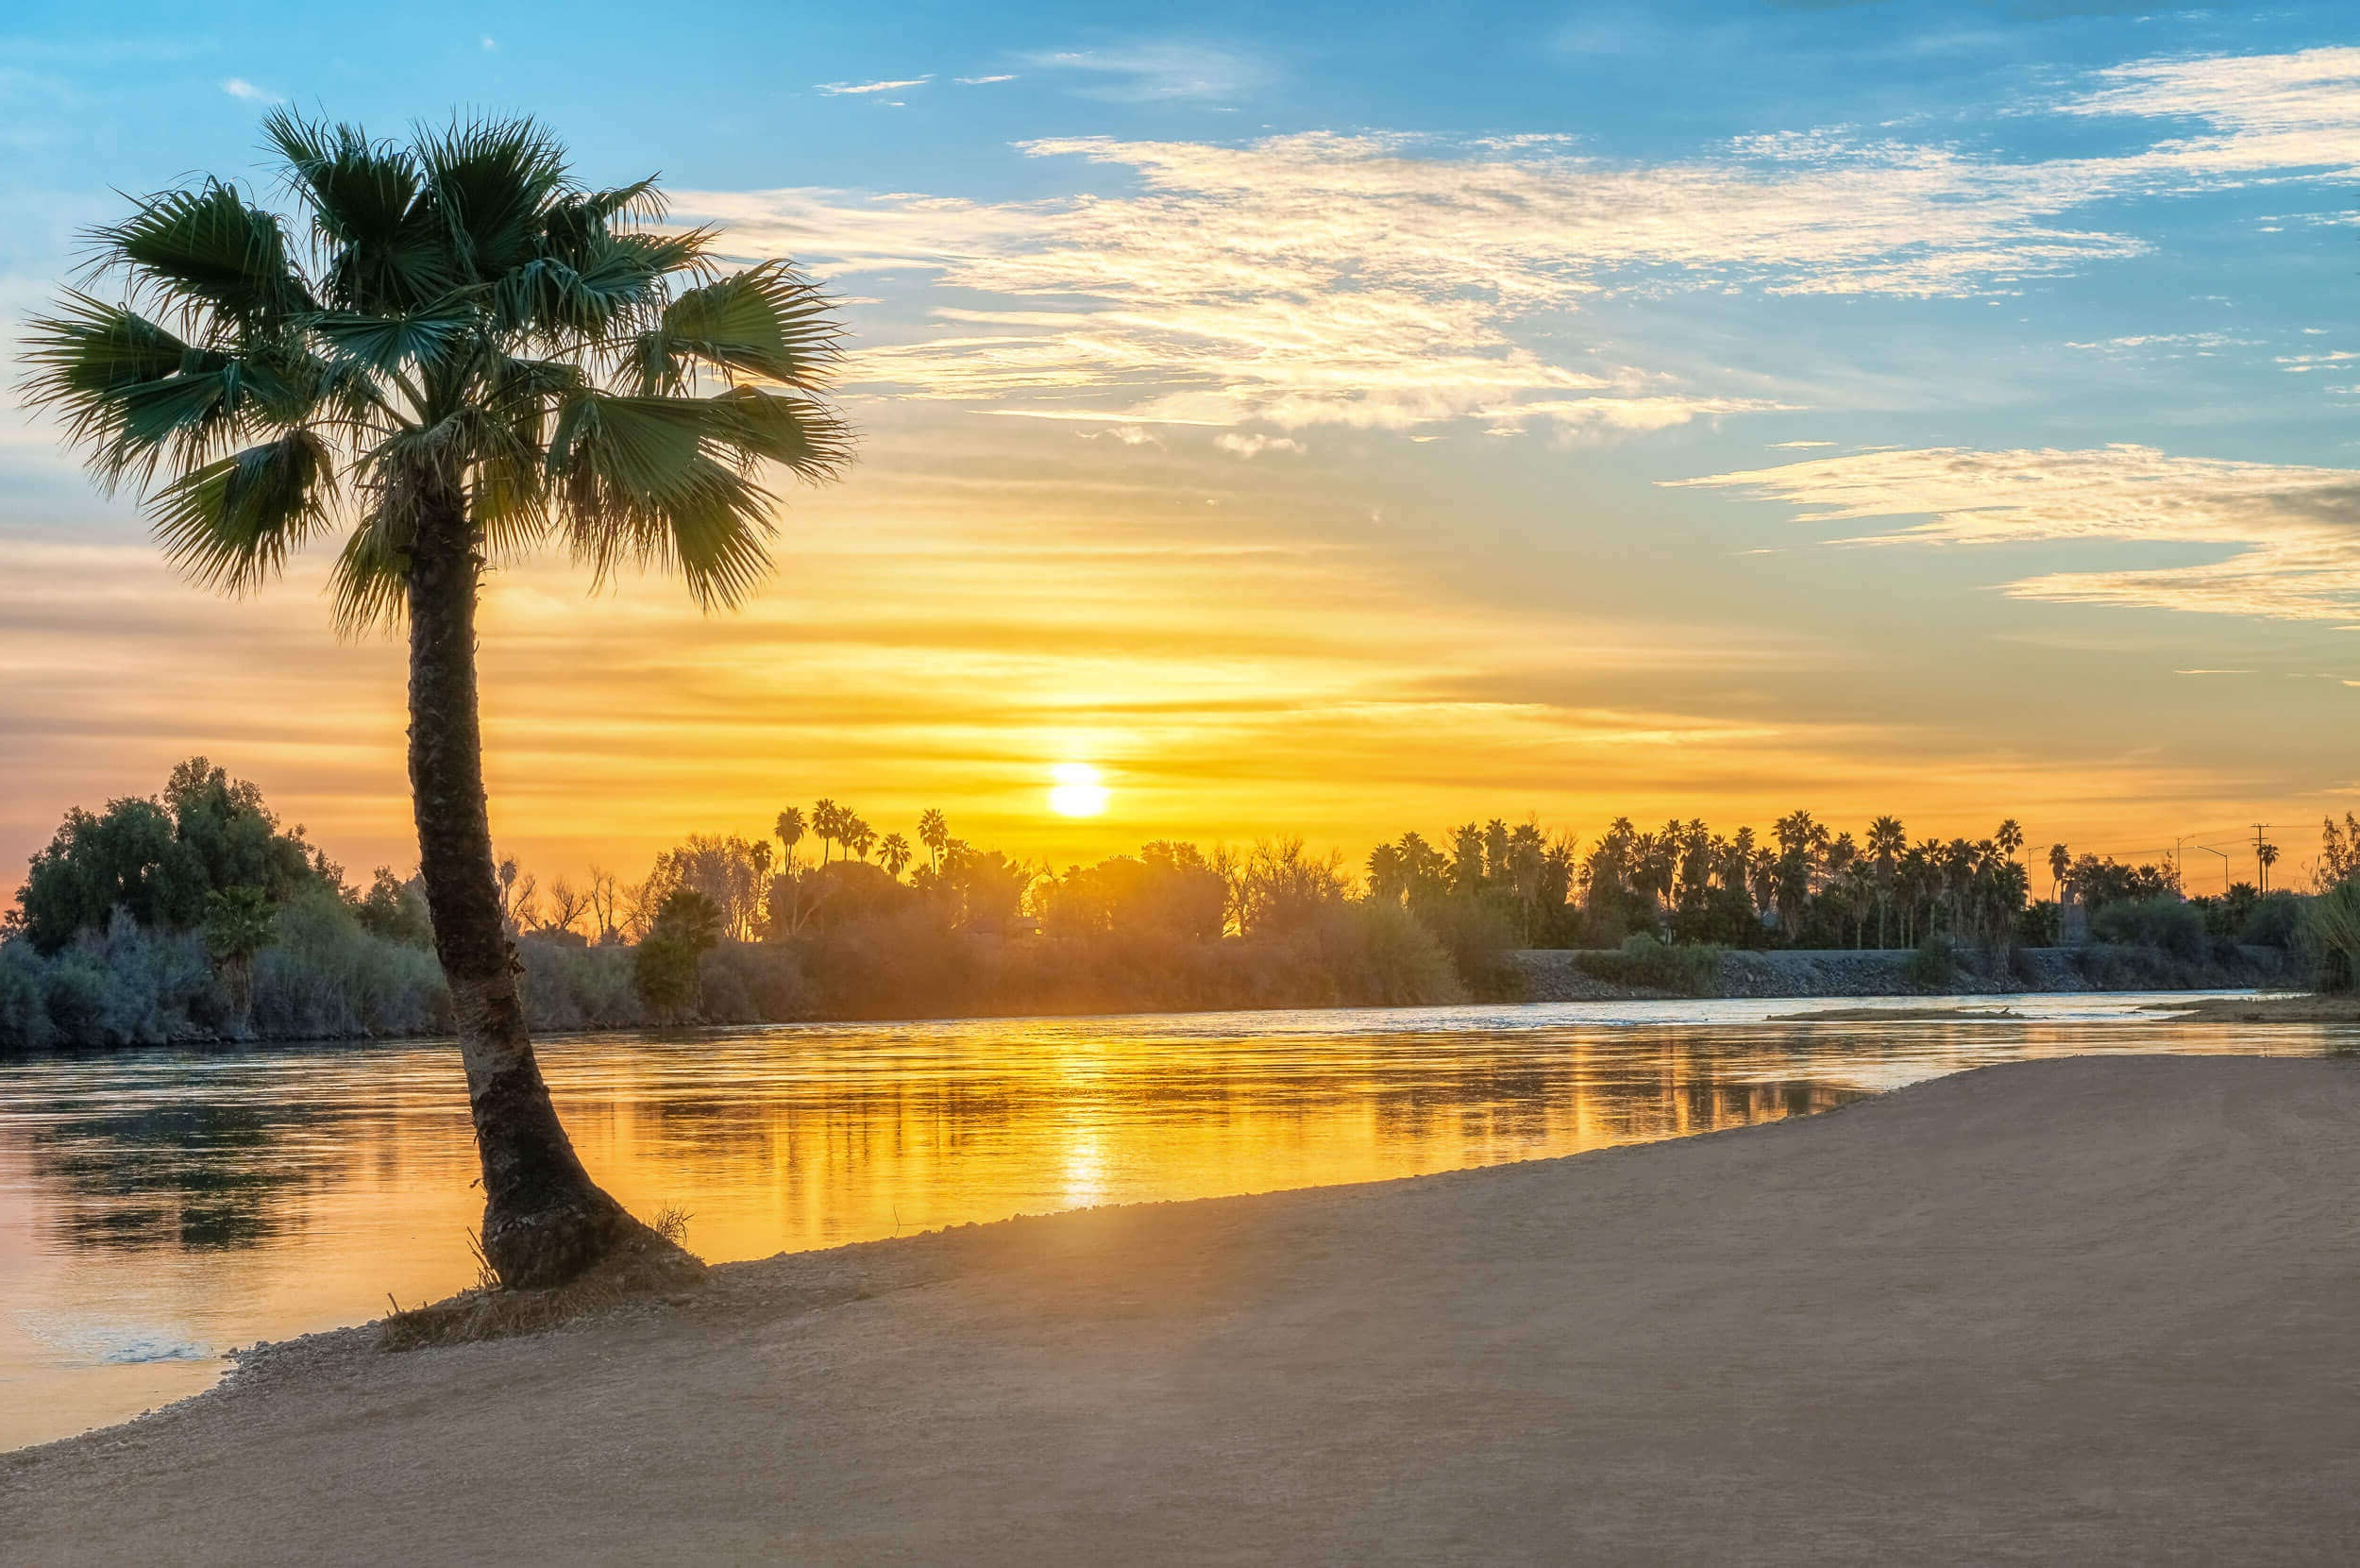 Save 50% On The Colorado River - Stay Sunday through Thursday and save big with our mid-week special on Standard and Premium RV sites! Call now to reserve! Special must be redeemed at time of booking. (928) 923-8230